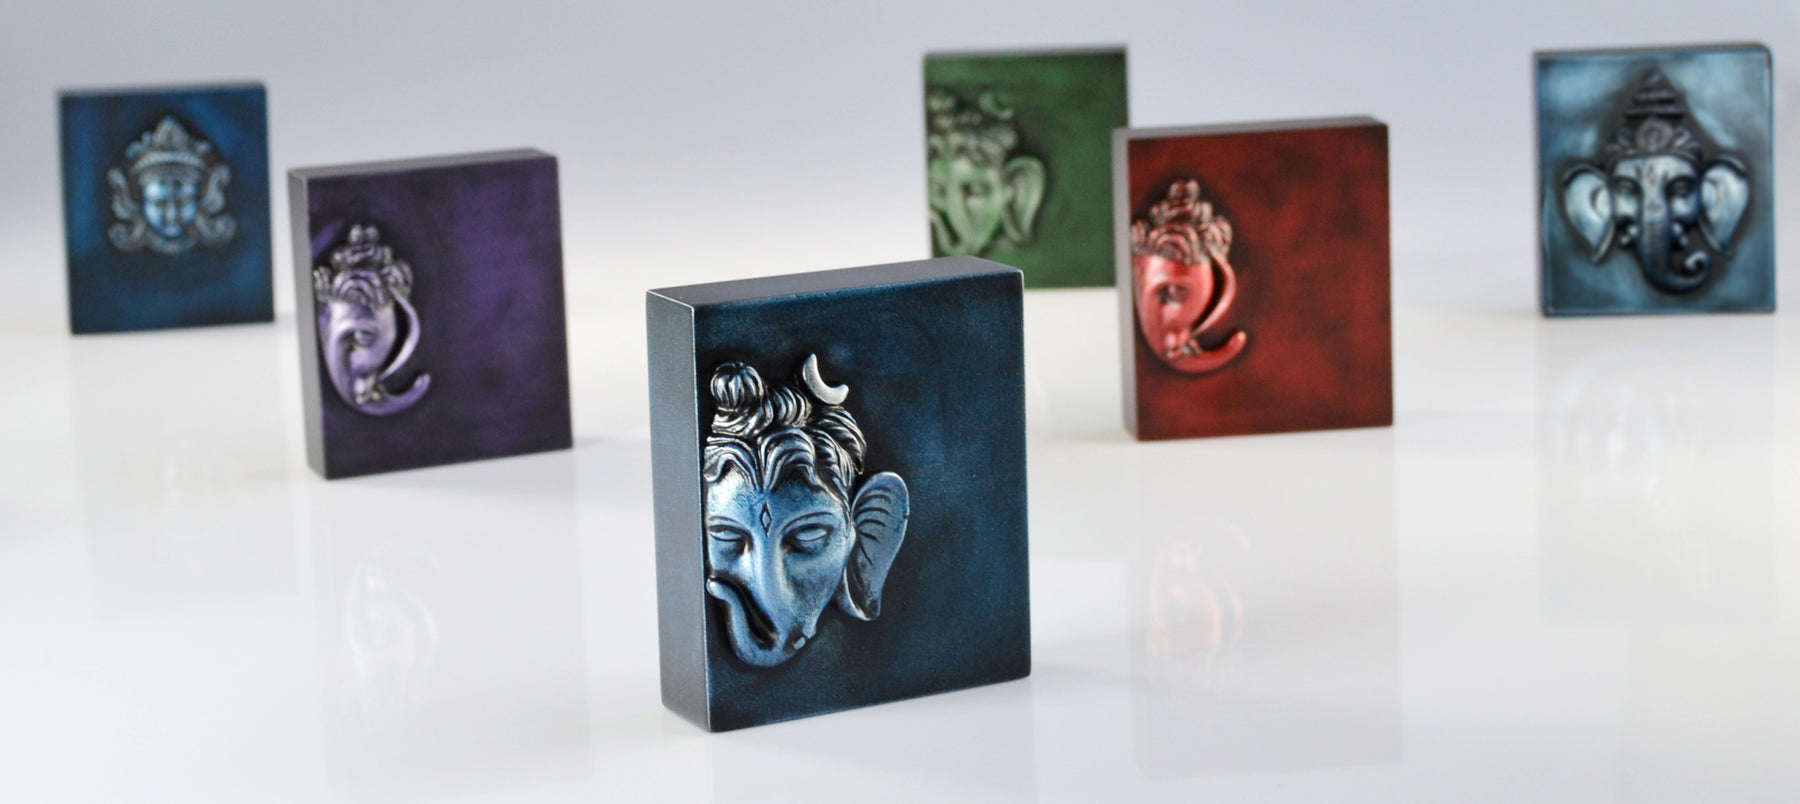 A Beautiful Gift Idea for Diwali & Ganesh Chaturthi Something Different. Not a Typical Gift.